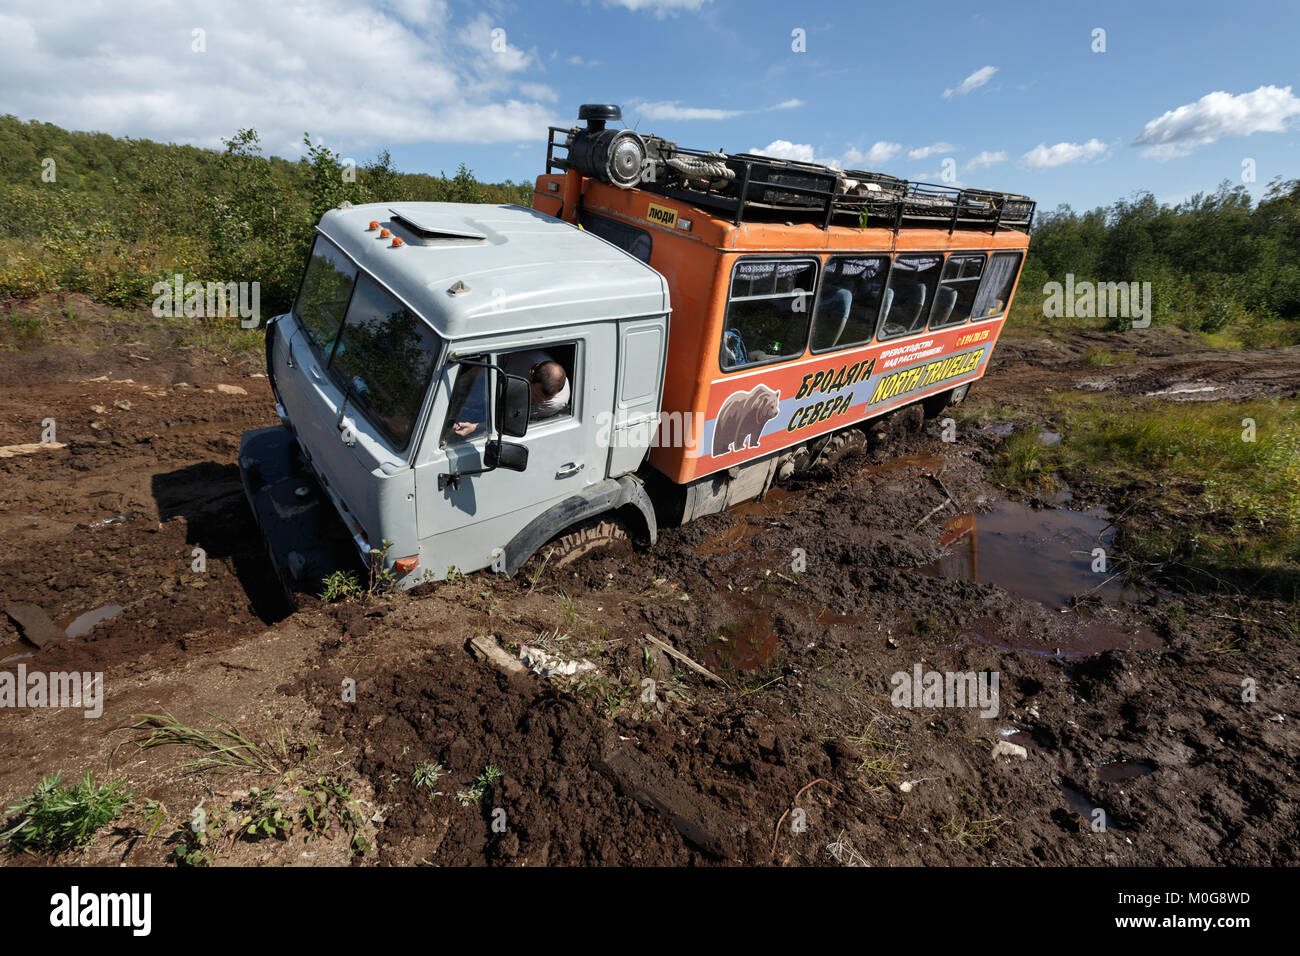 Russian off-road extreme expedition truck KamAZ (six-wheel drive) for transportation of tourists and travelers, - Stock Image